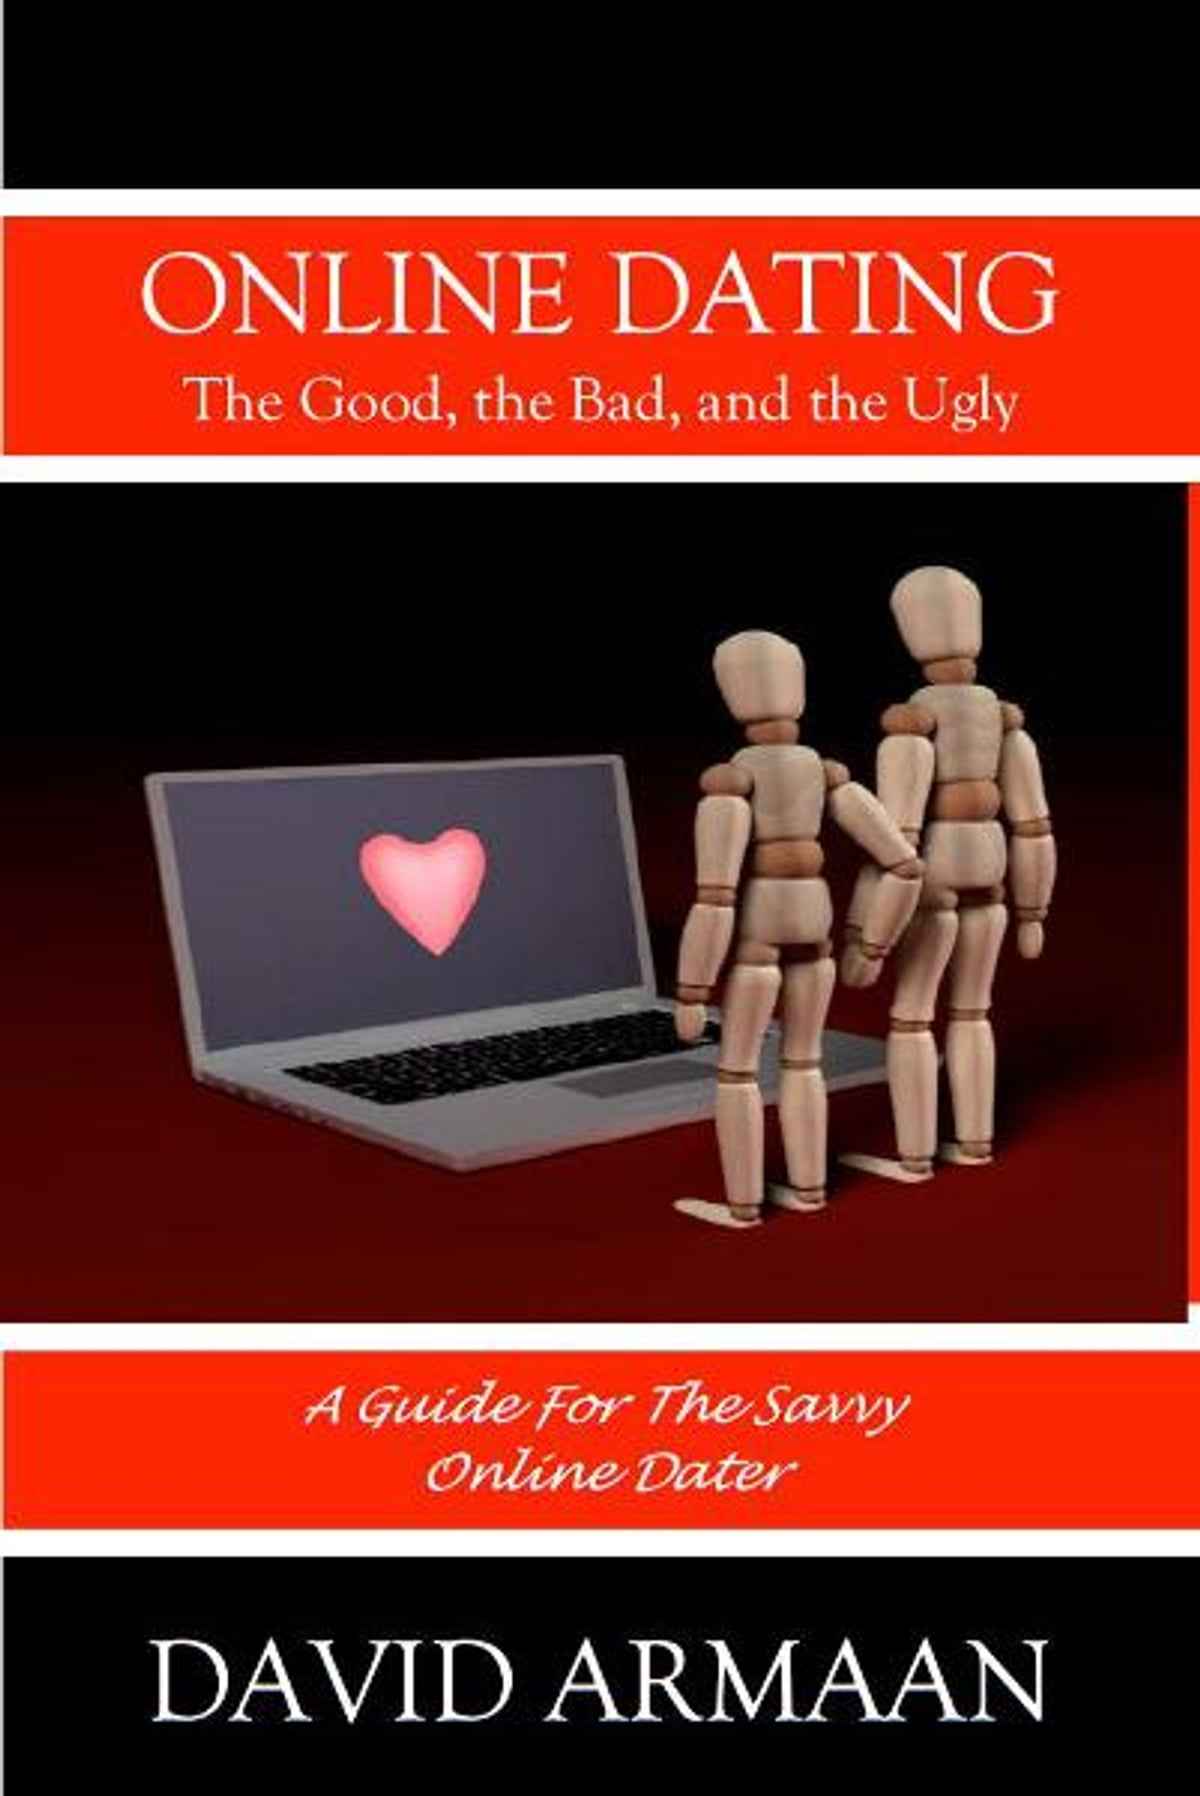 Online dating the Good the Bad and the Ugly